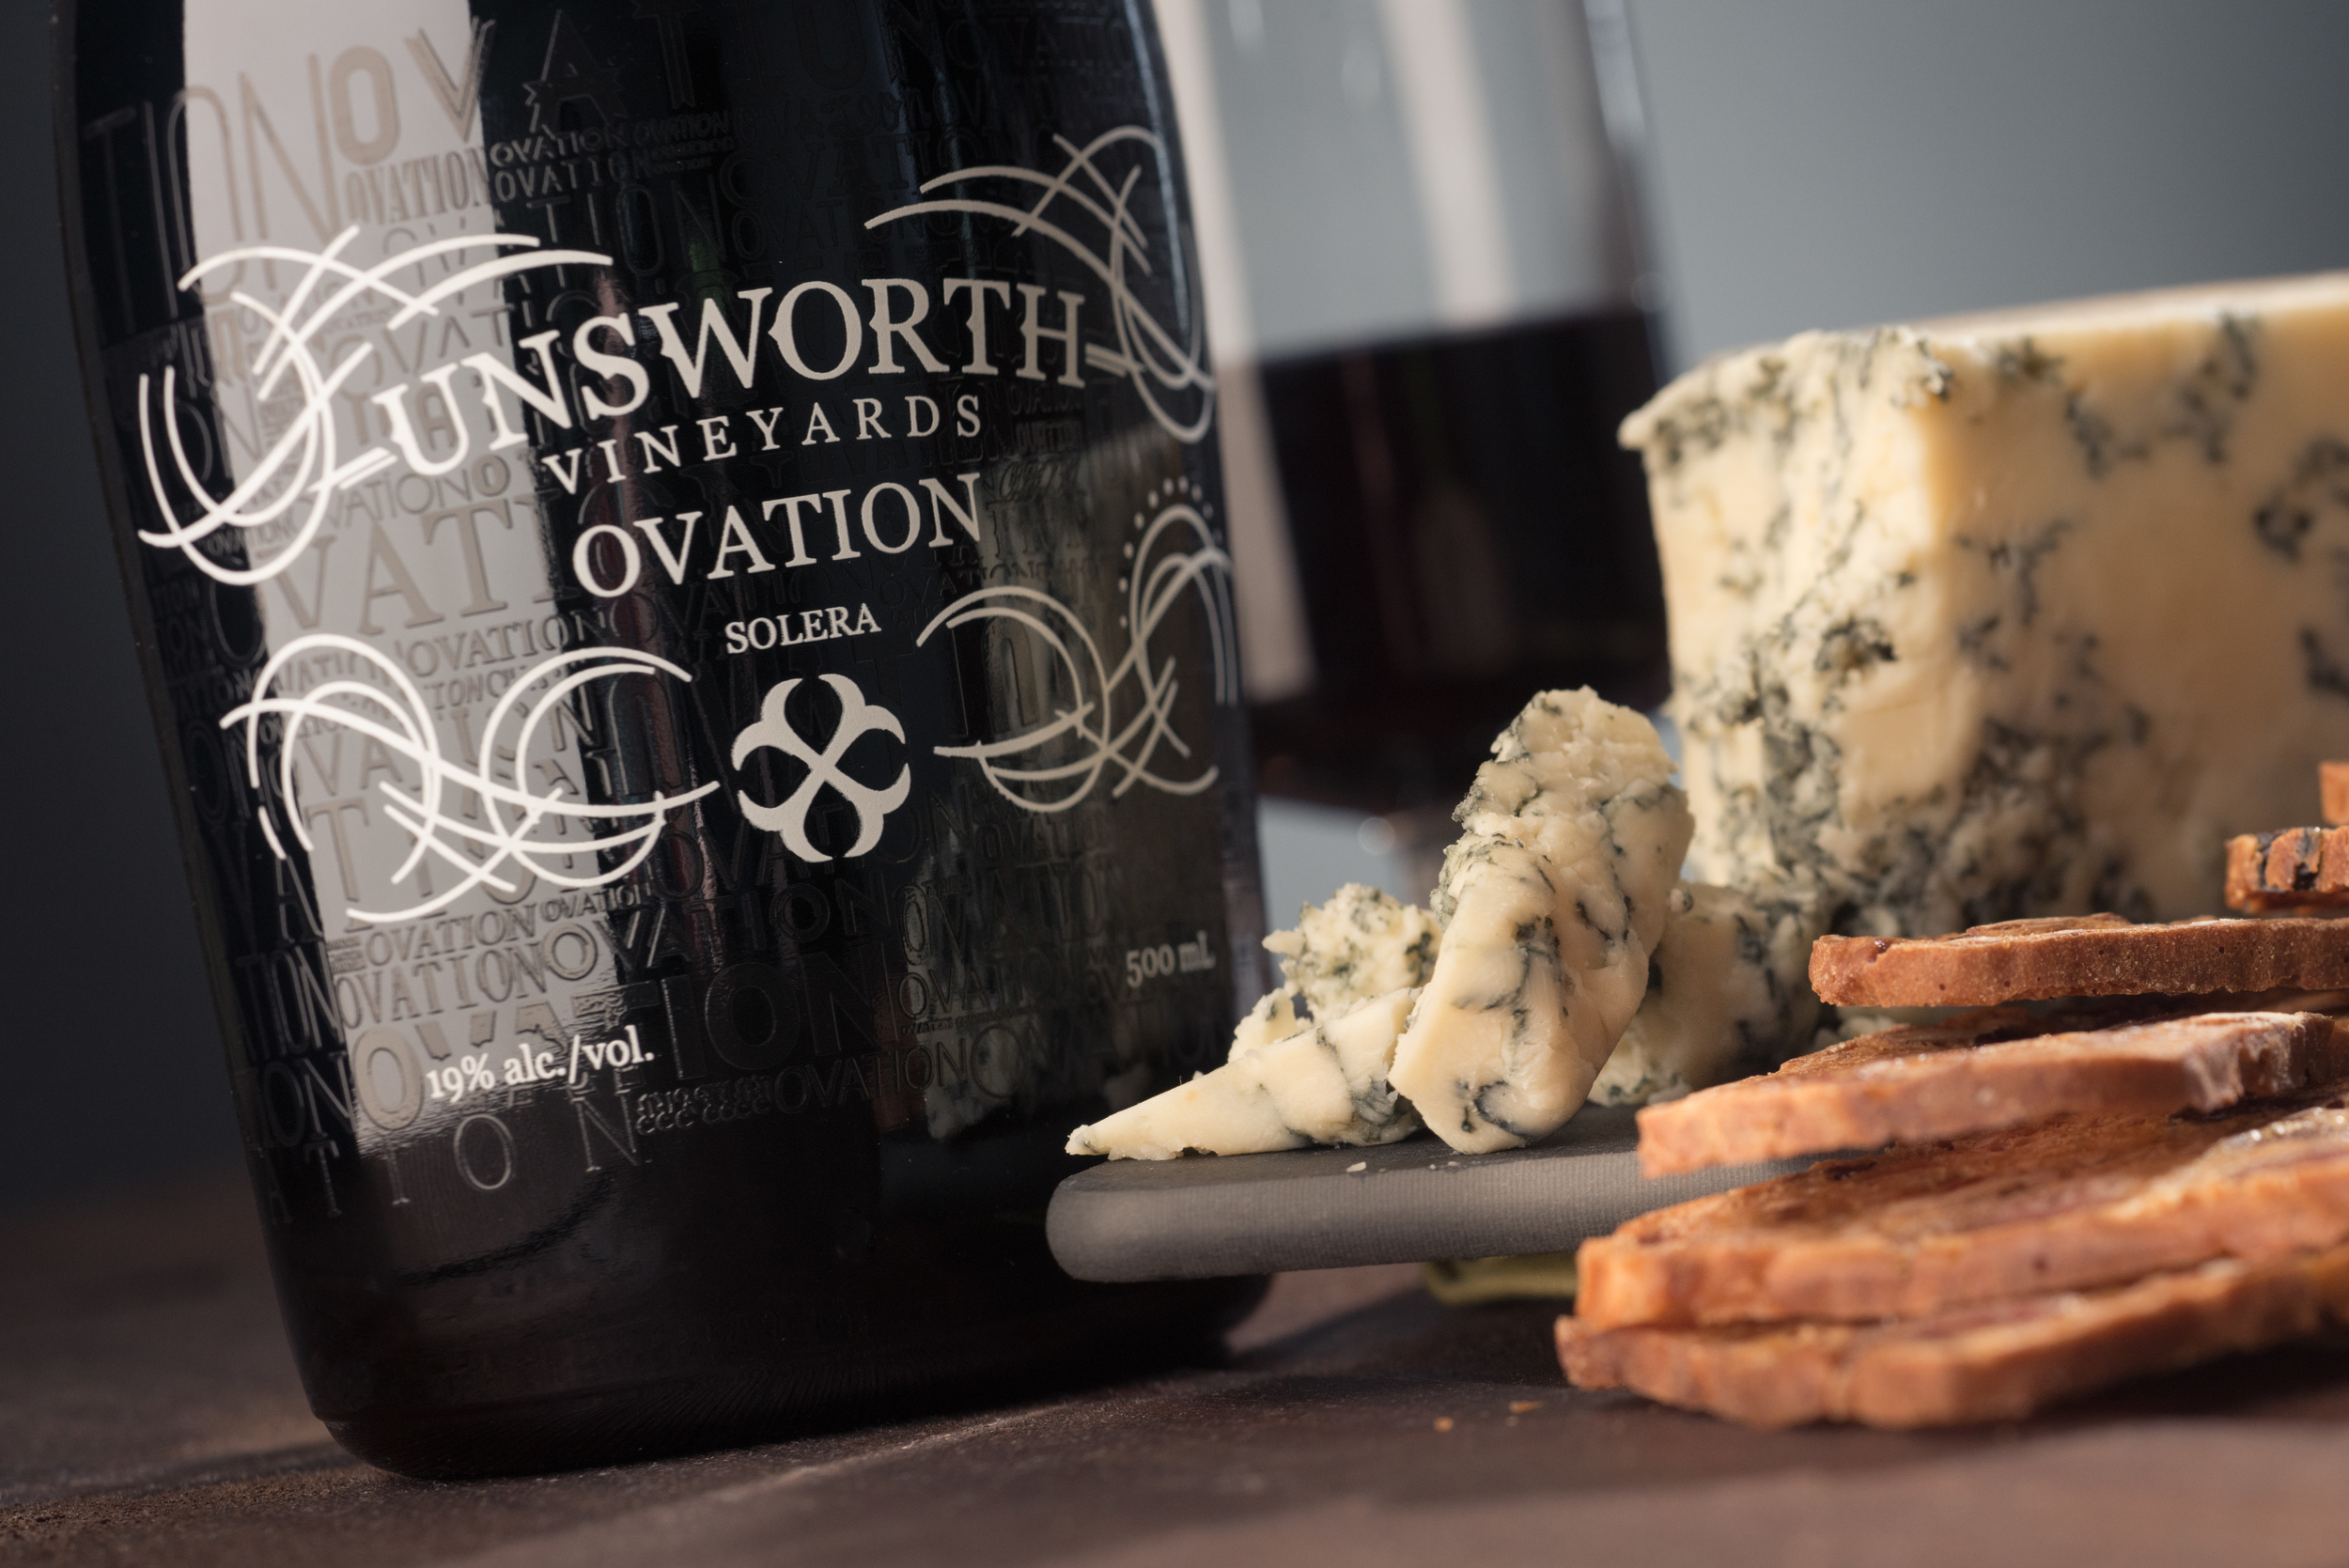 Unsworth Ovation Port Wine with Blue Cheese